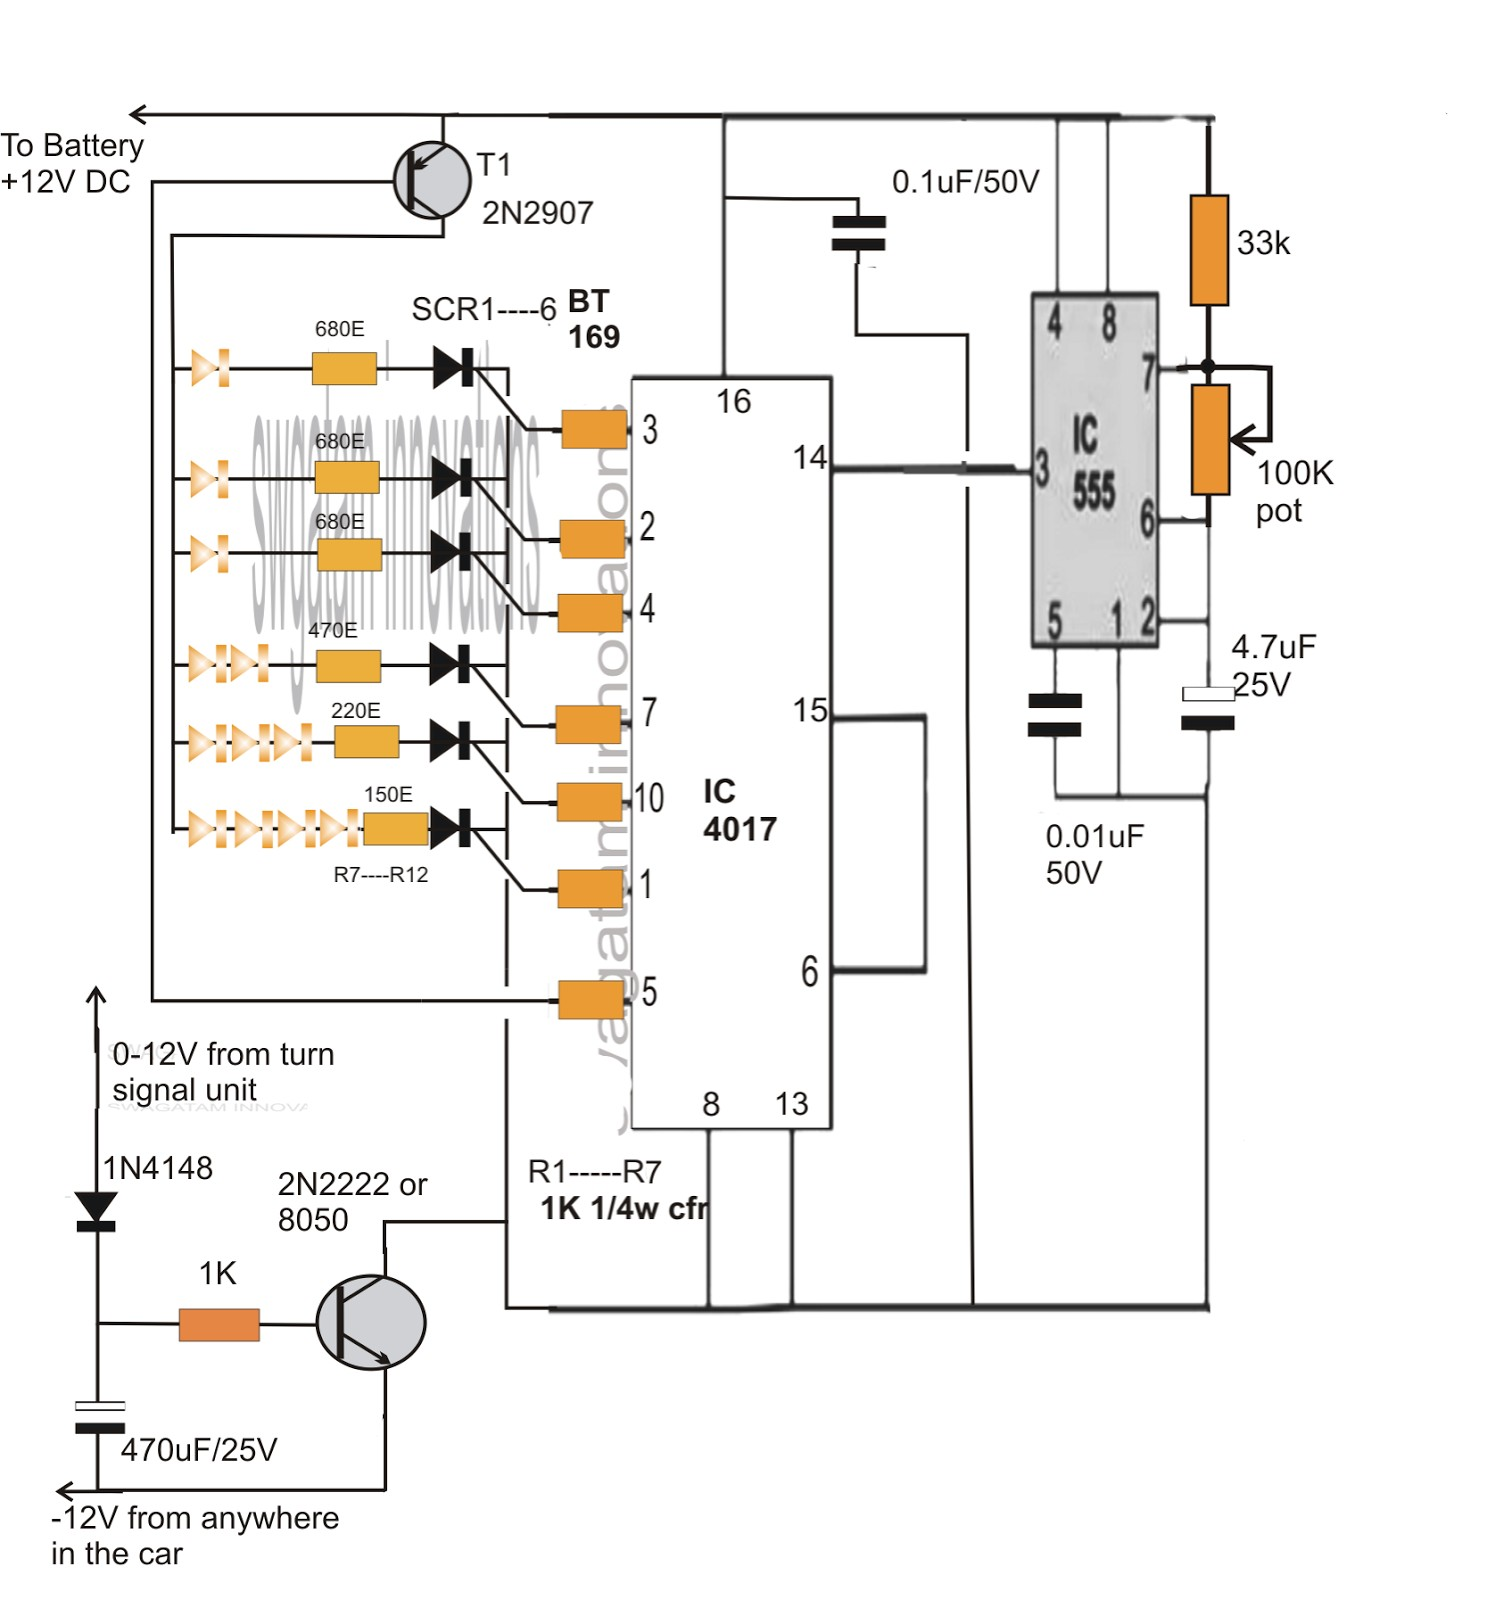 Flasher Relay Wiring Diagram Pin Flasher Relay Wiring Diagram Juanribon Led Sequential Bar Of Flasher Relay Wiring Diagram